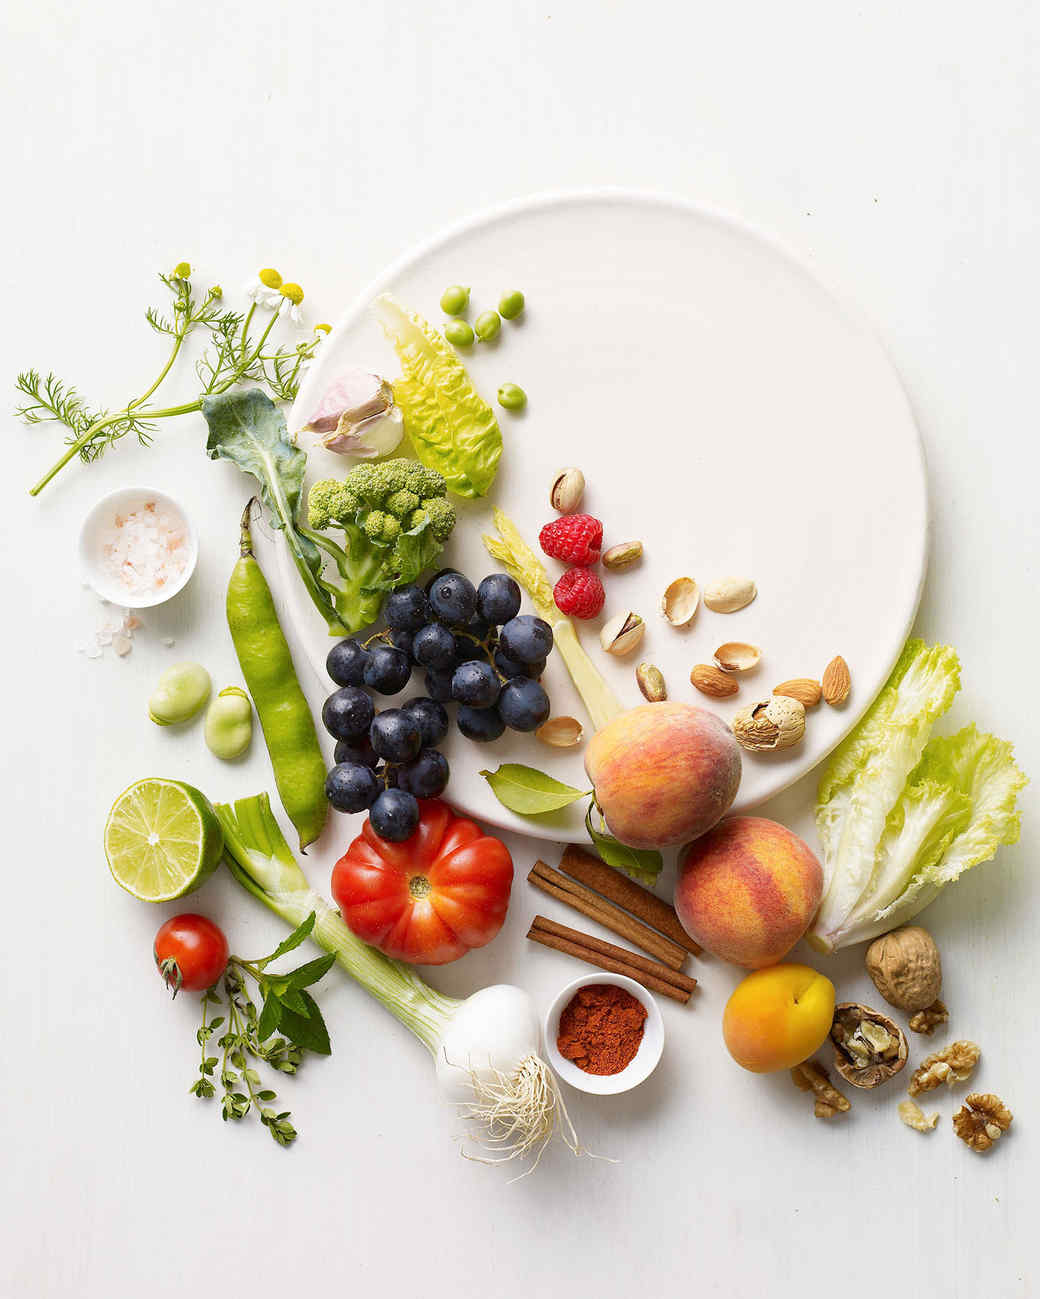 an assortment of fruits and vegetables on a white plate